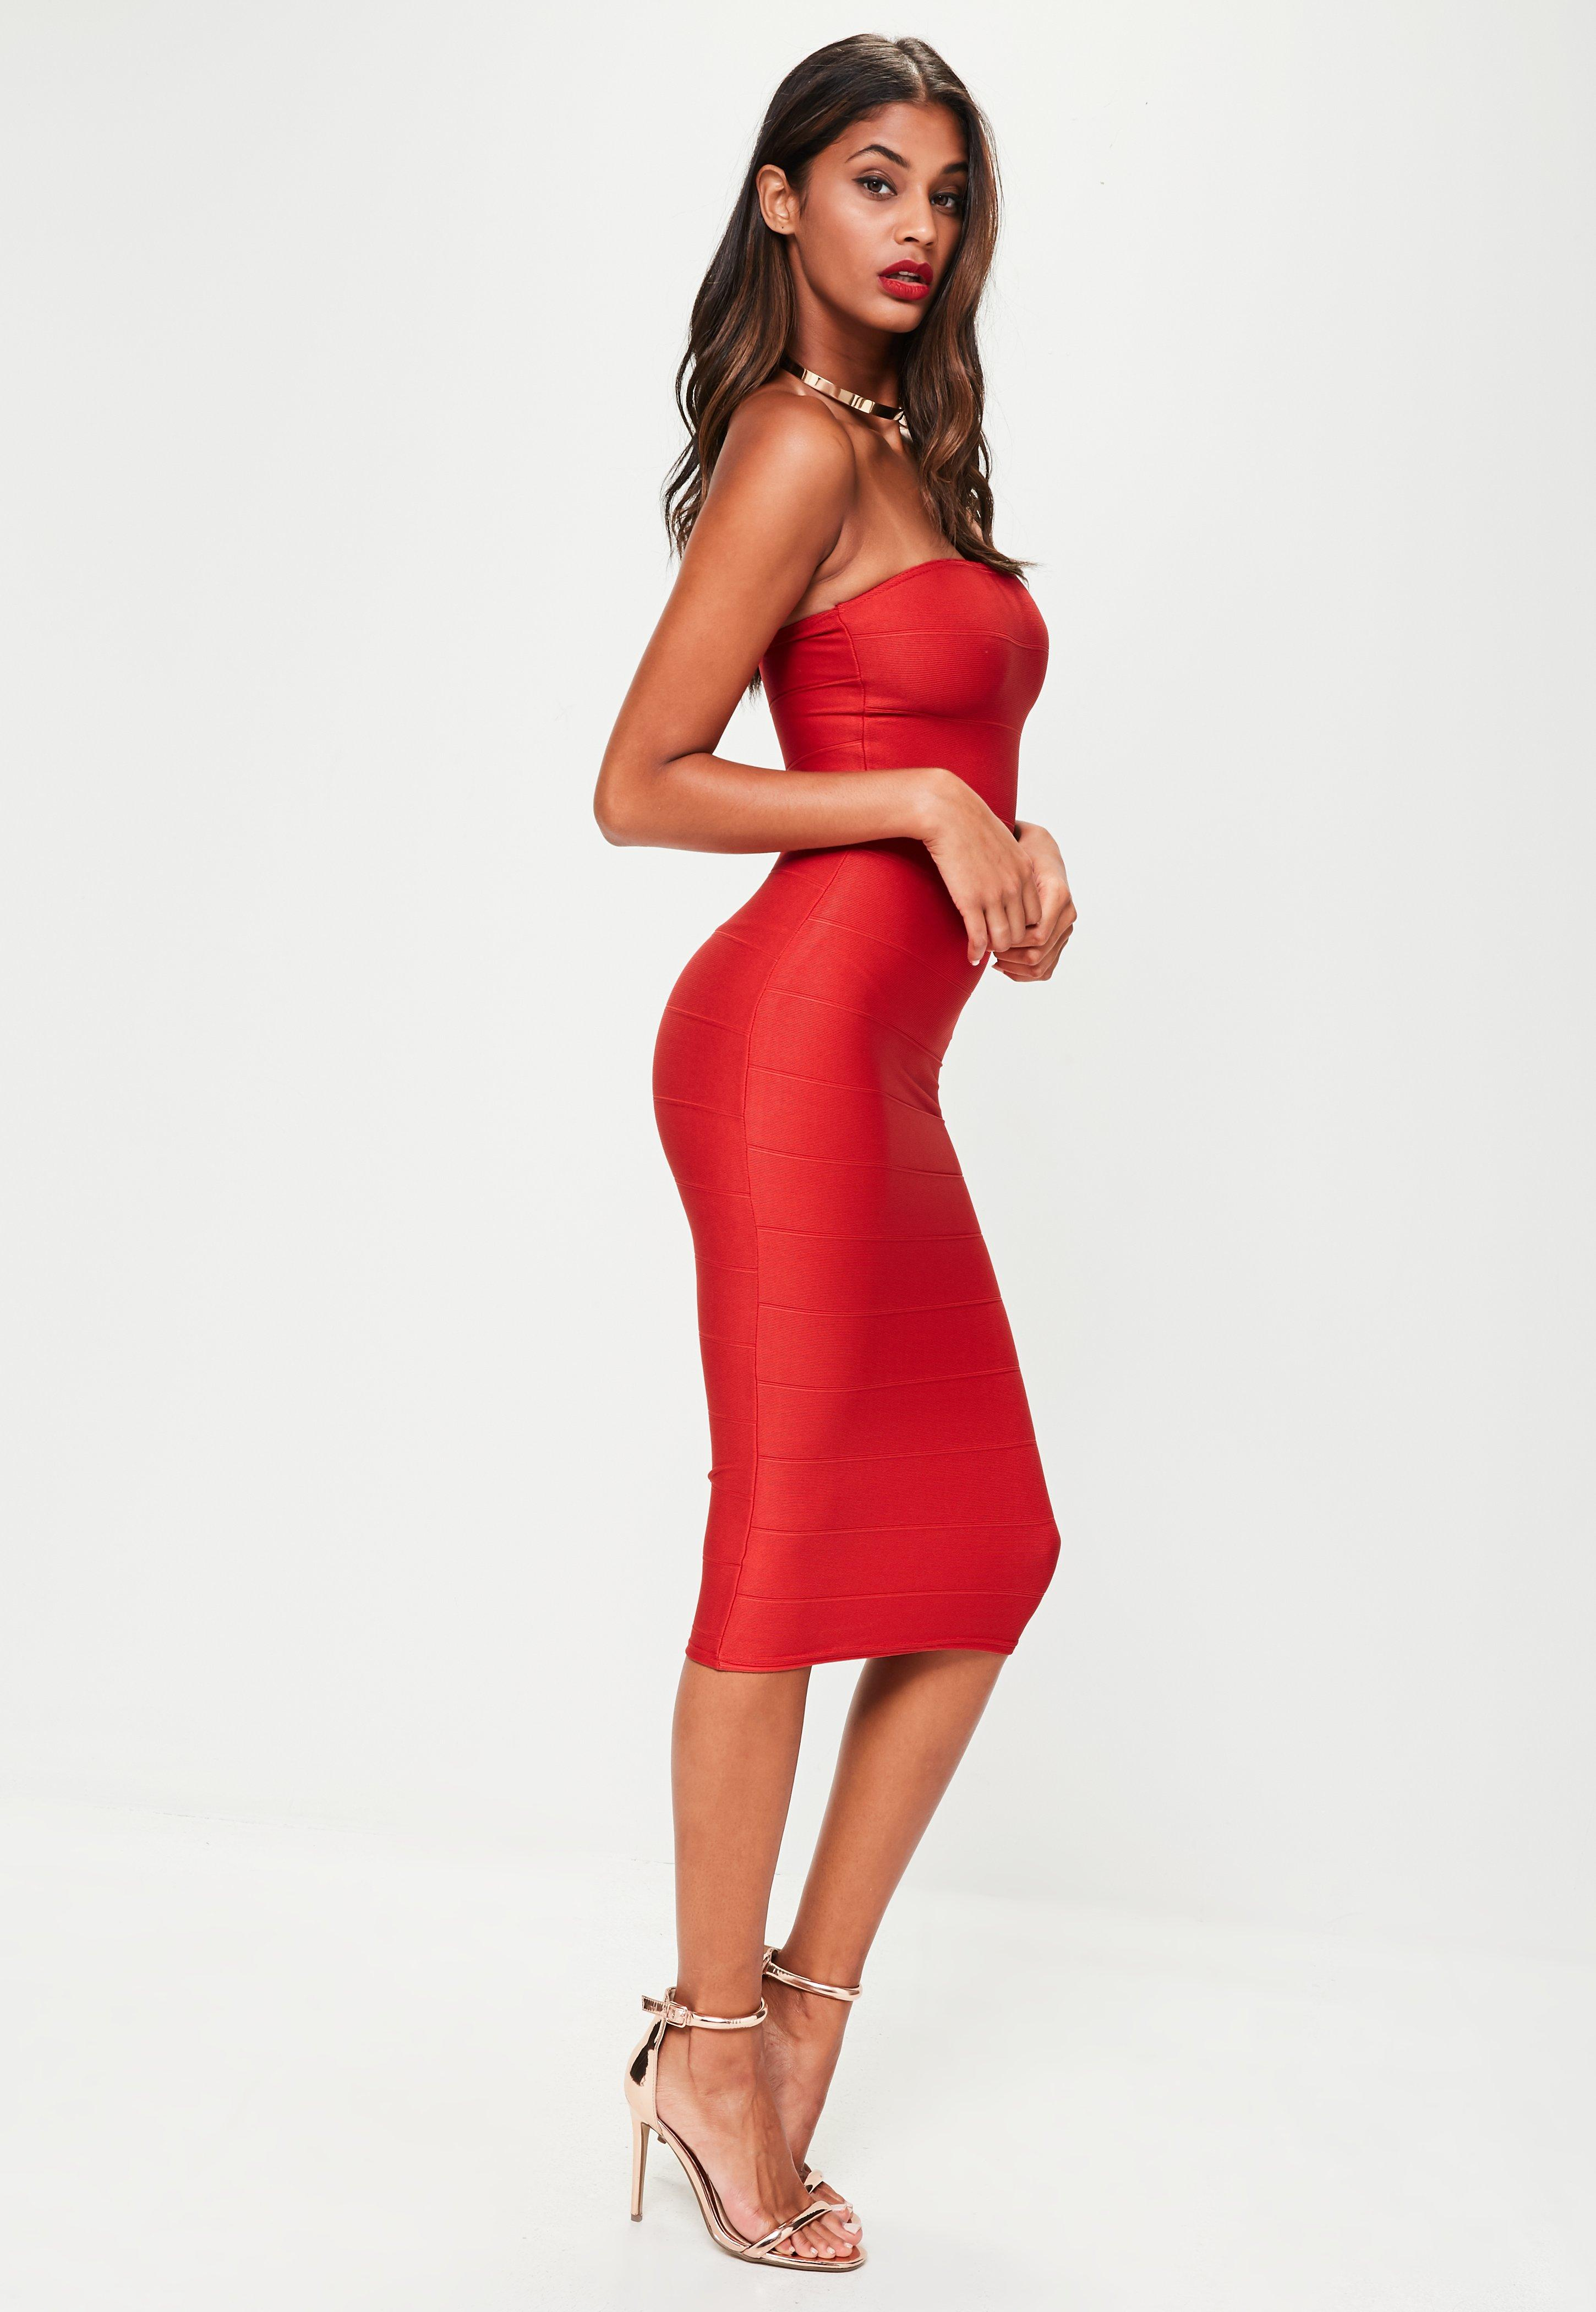 Supply Cheap Online Missguided Strapless Bandage Midi Dress Recommend Cheap Oz0hKvE